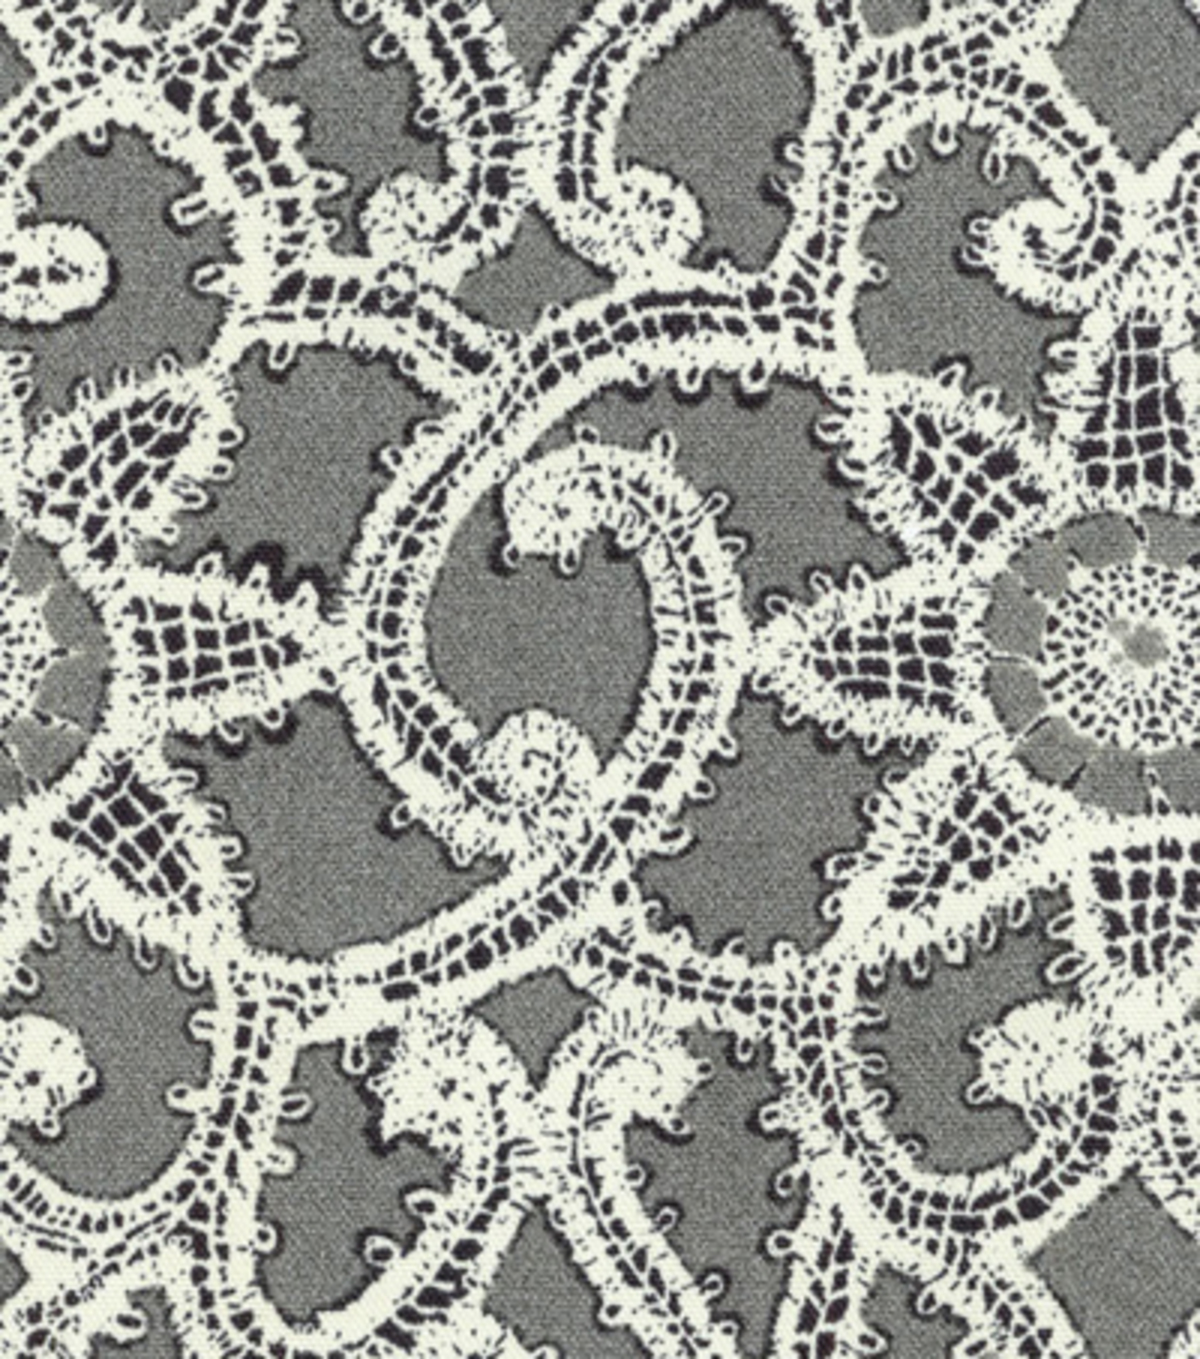 Home Decor 8''x 8'' Swatch- HGTV HOME Like Lace Zinc